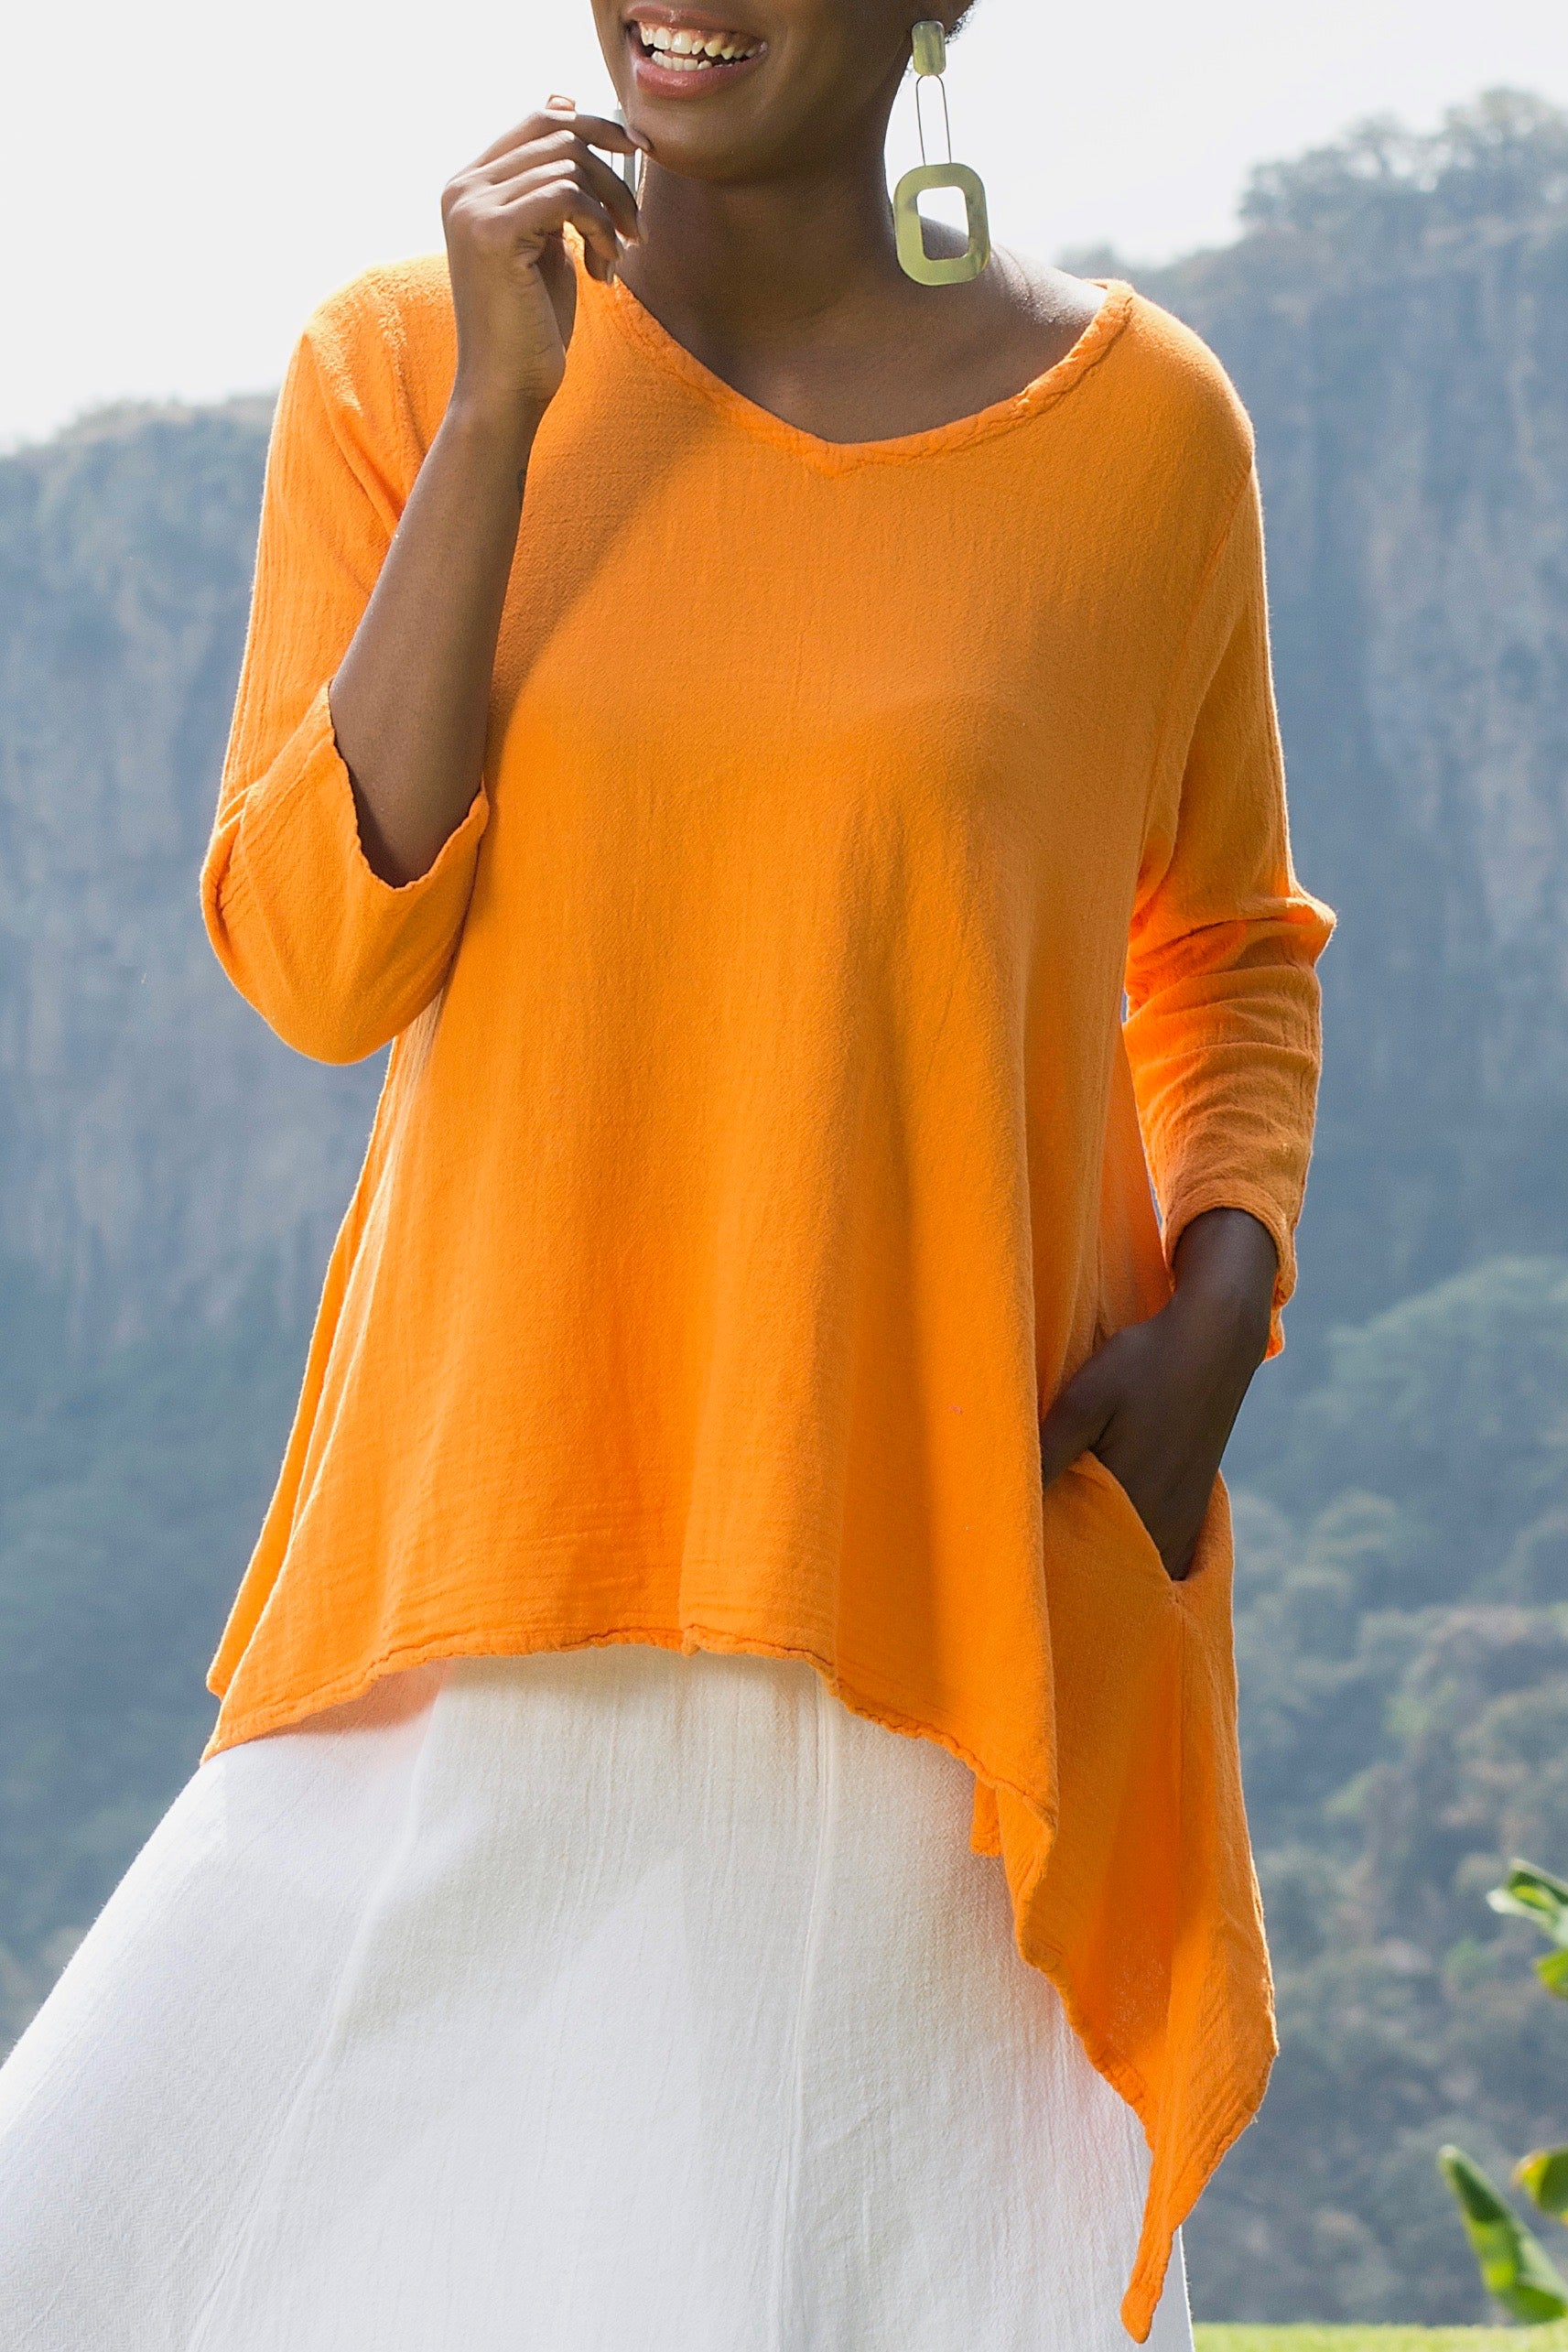 Marion- Perfect Summer Top with Pockets